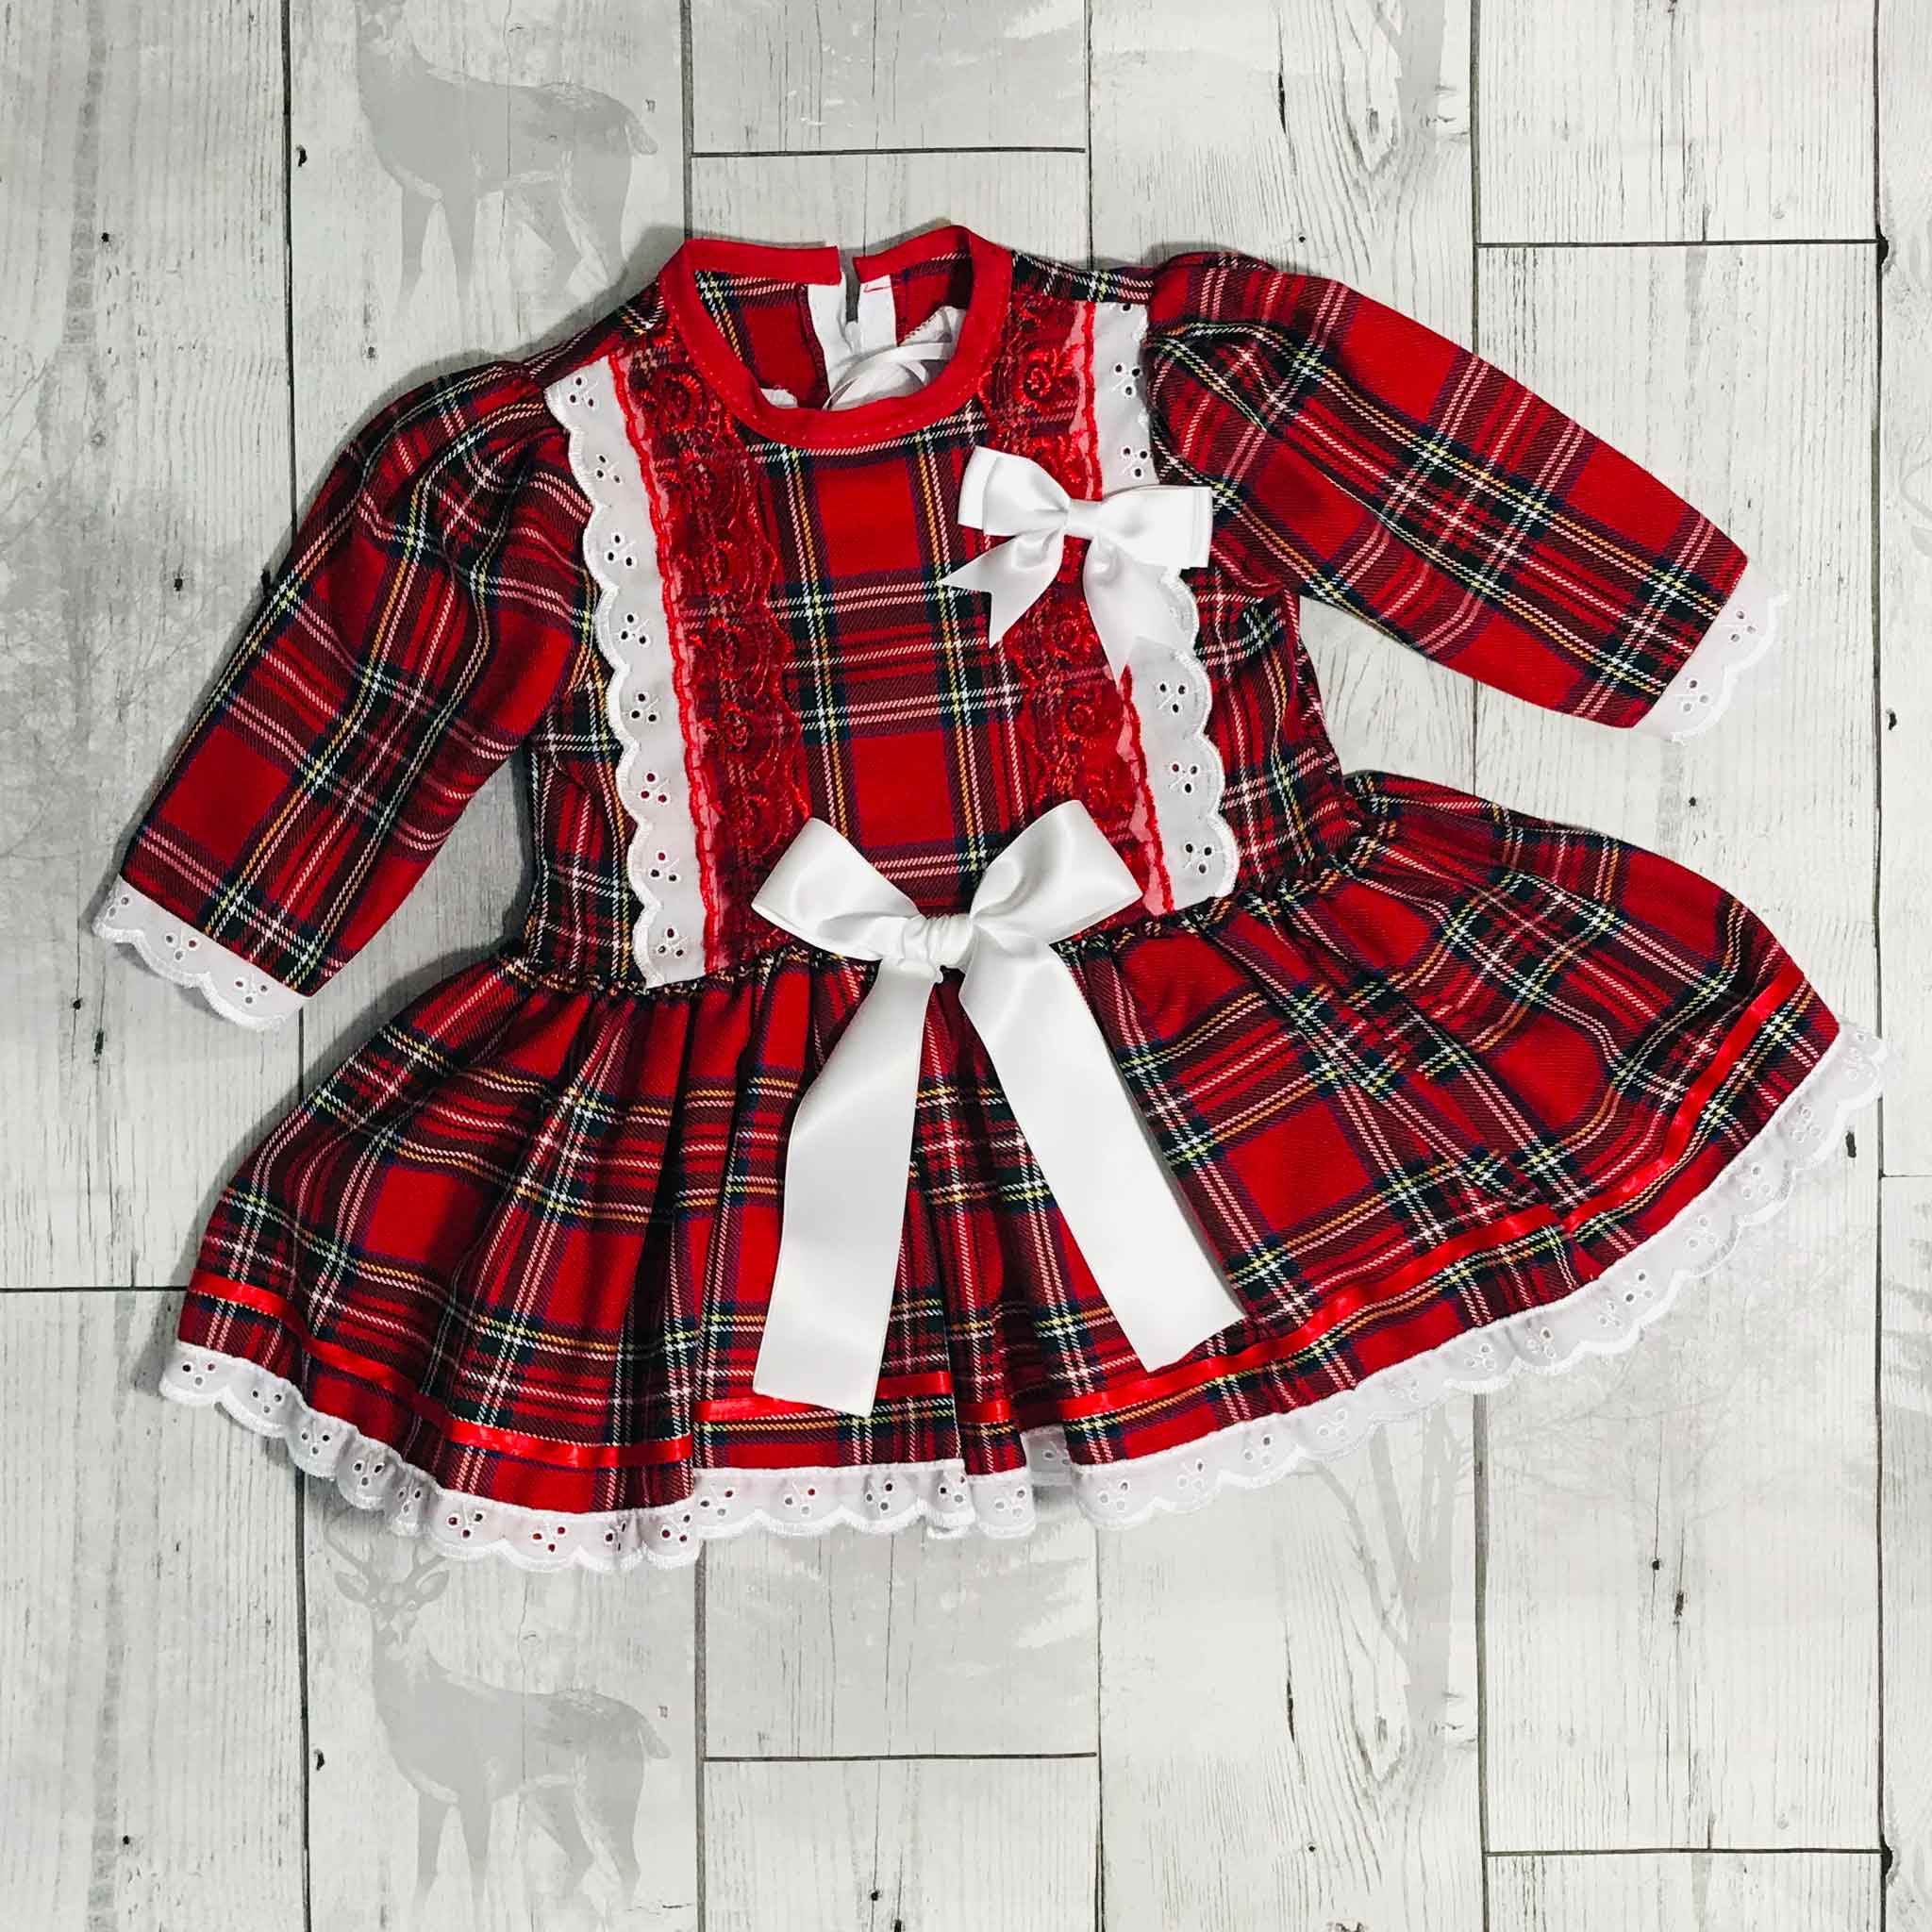 Red Tartan Frilly Dress